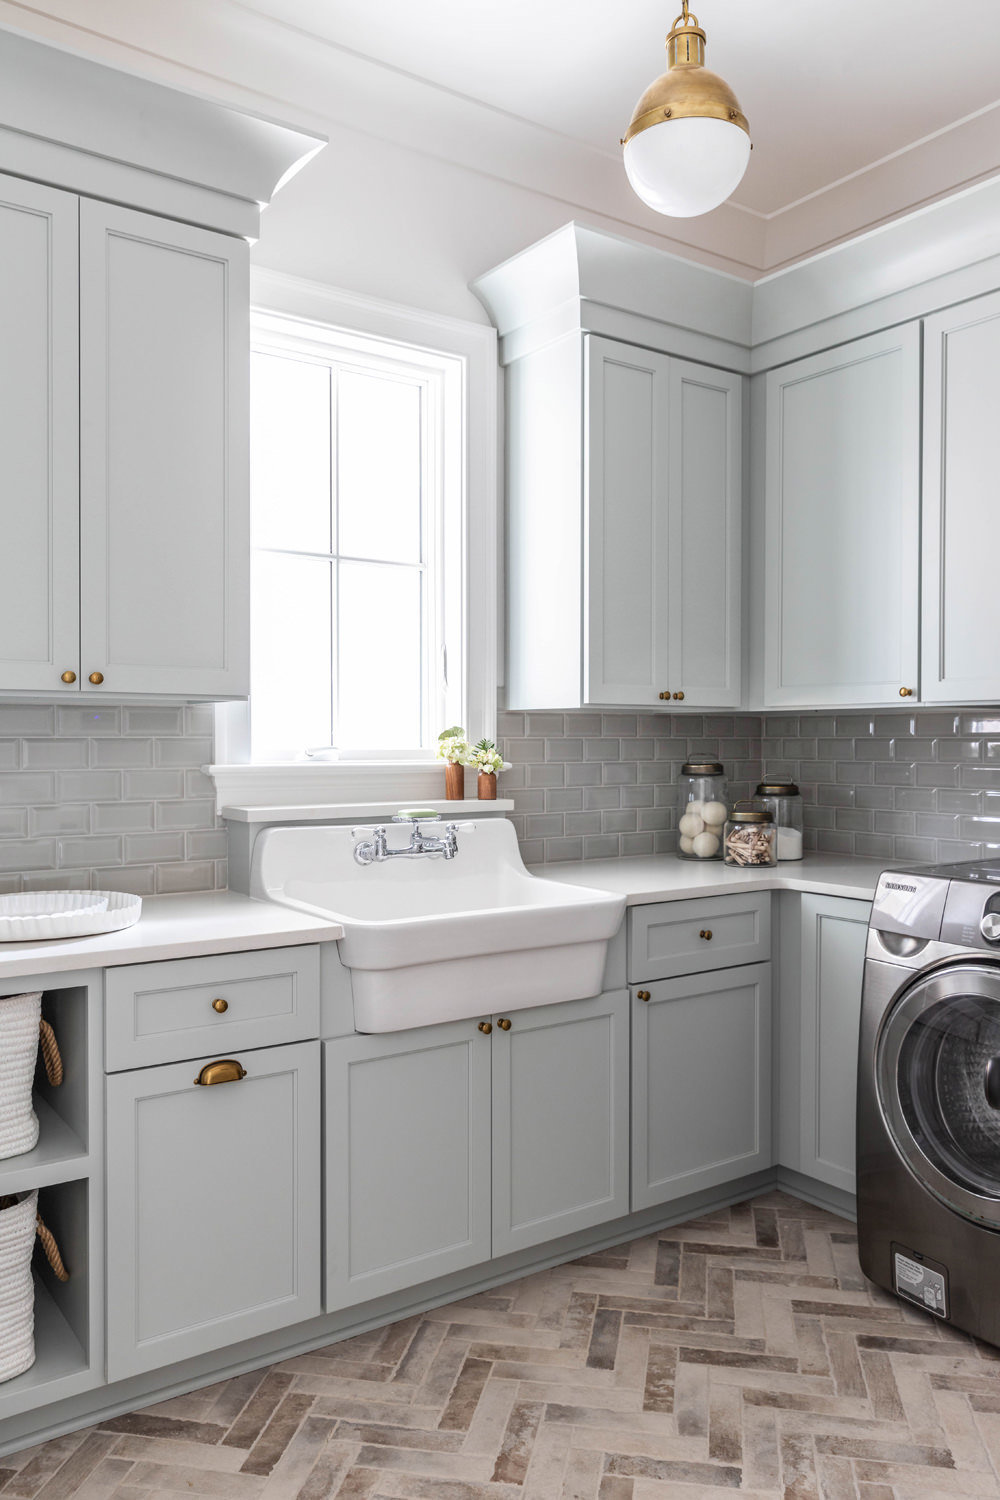 Sherwin-Williams-Silver-Strand-Laundry-Room-with-Kohler-Utility-Sink-and-Brick-Herringbone-Floor-1